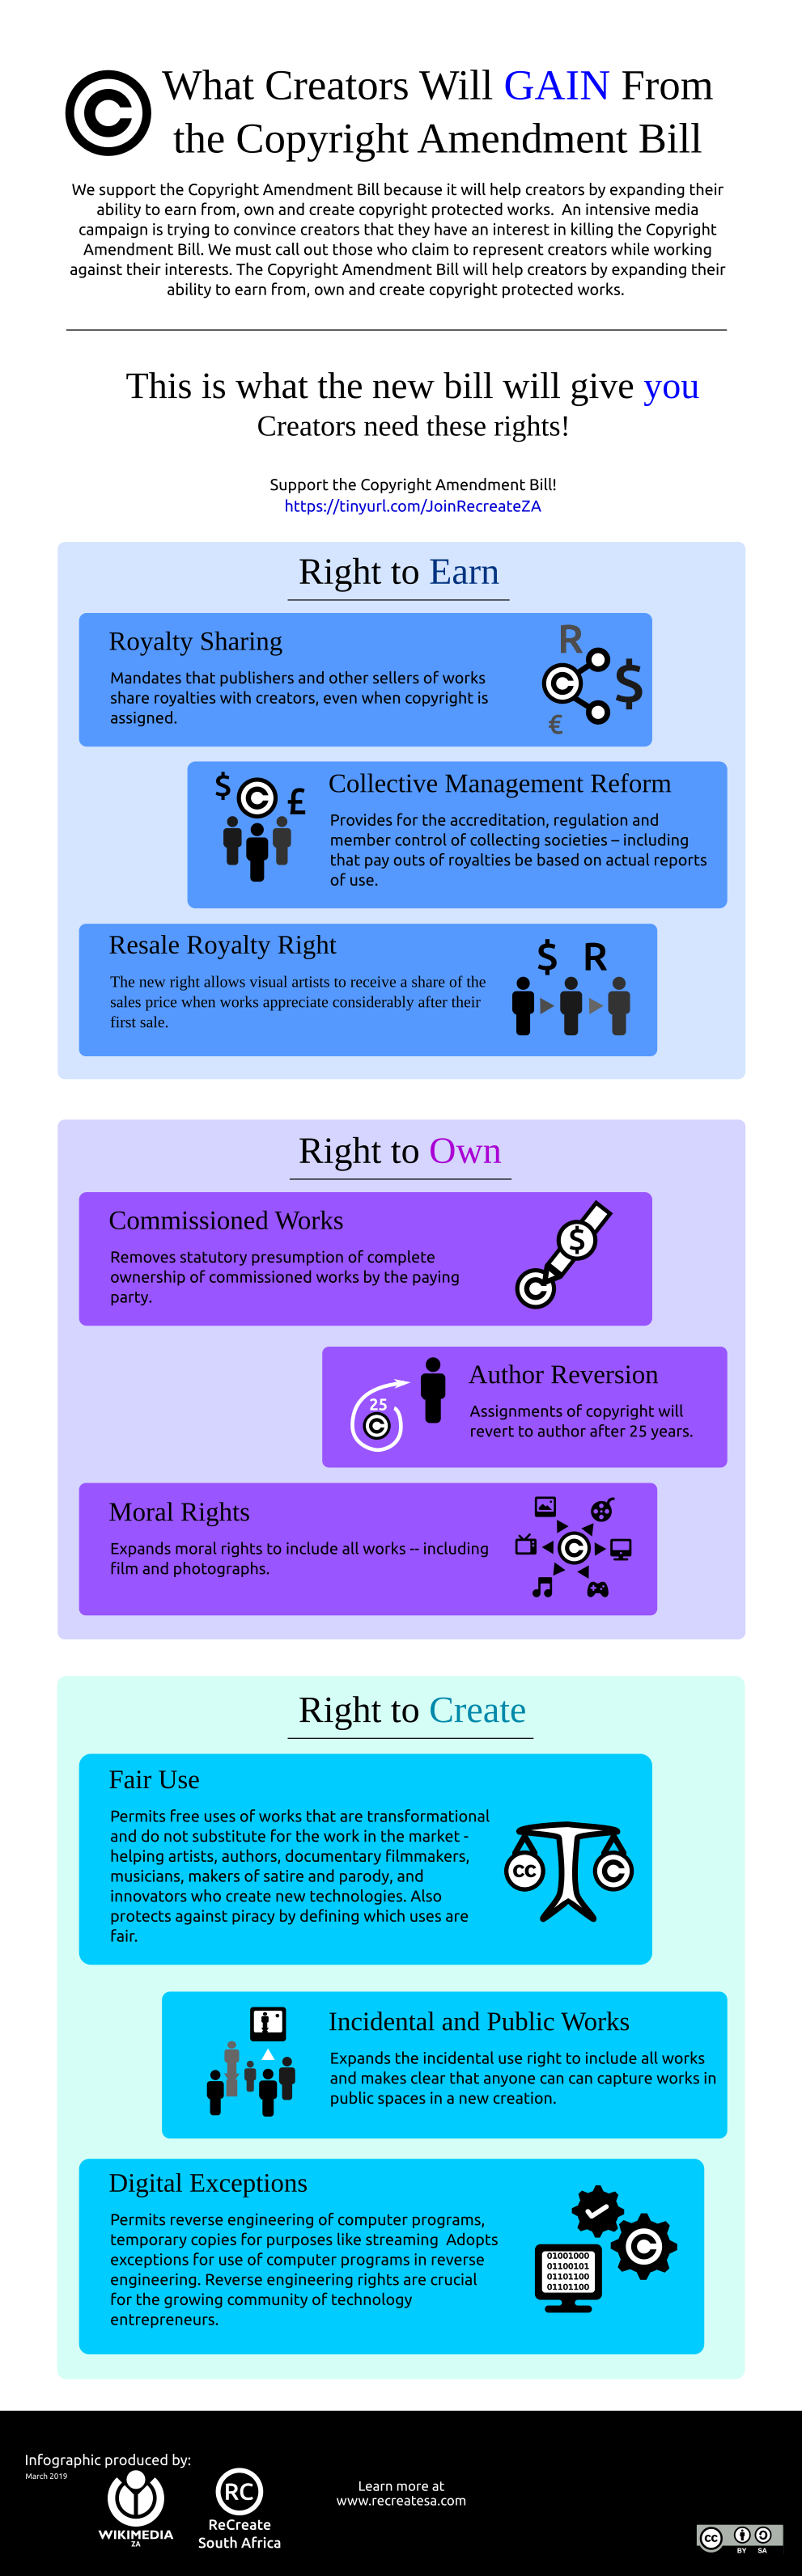 Copyright Bill Infographic final.png